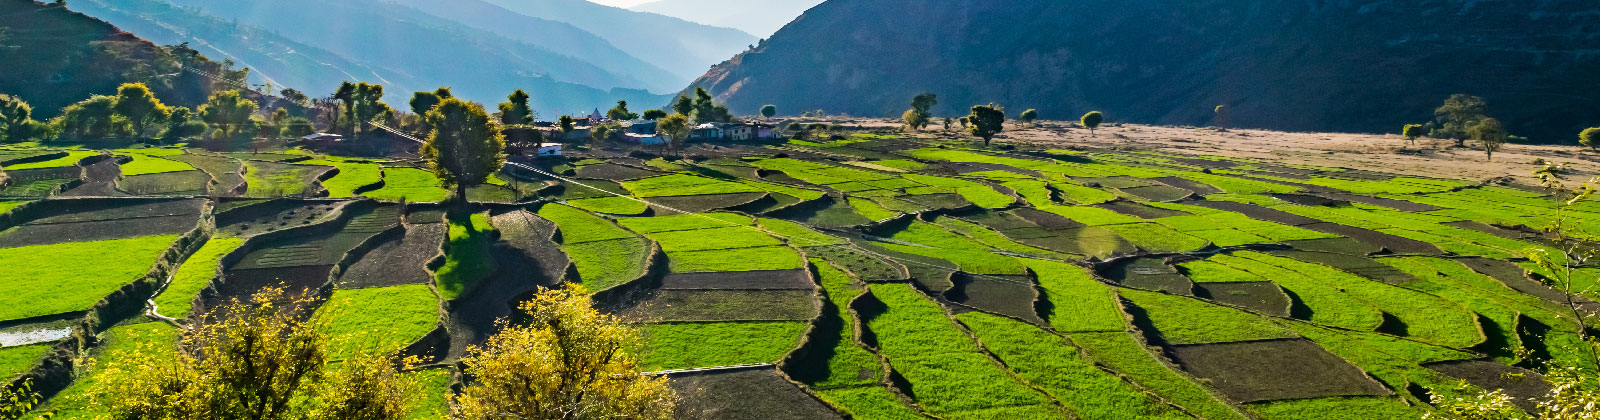 Pantwari-a-Himalayan-village-in-Uttarakhand-Village-Tourism